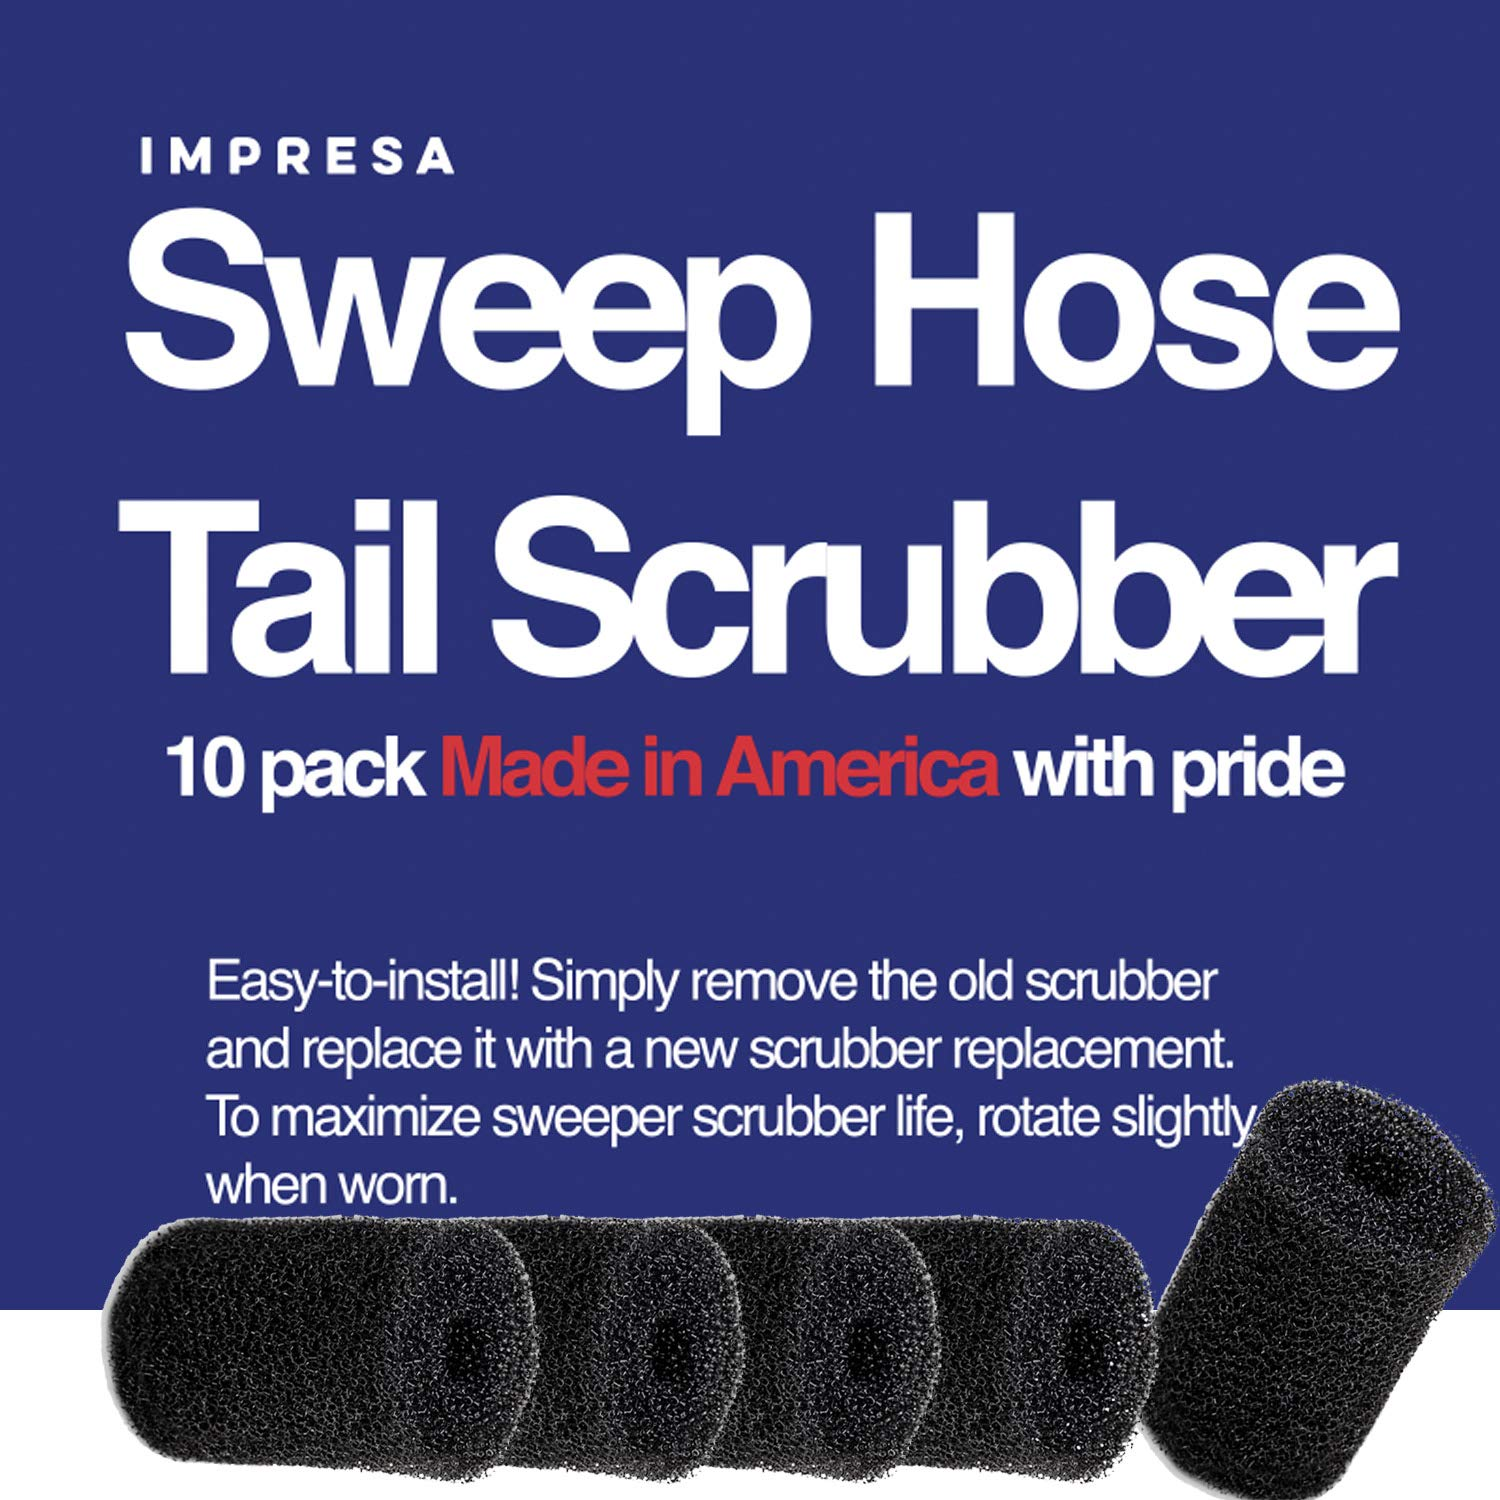 Impresa Products 10-Pack Polaris Tail Scrubber Replacement for Vac-Sweep Pool Cleaner Hose Tail - Fits 180, 280, 360, 380, 480, 3900 Sport - Made in The USA by Impresa Products